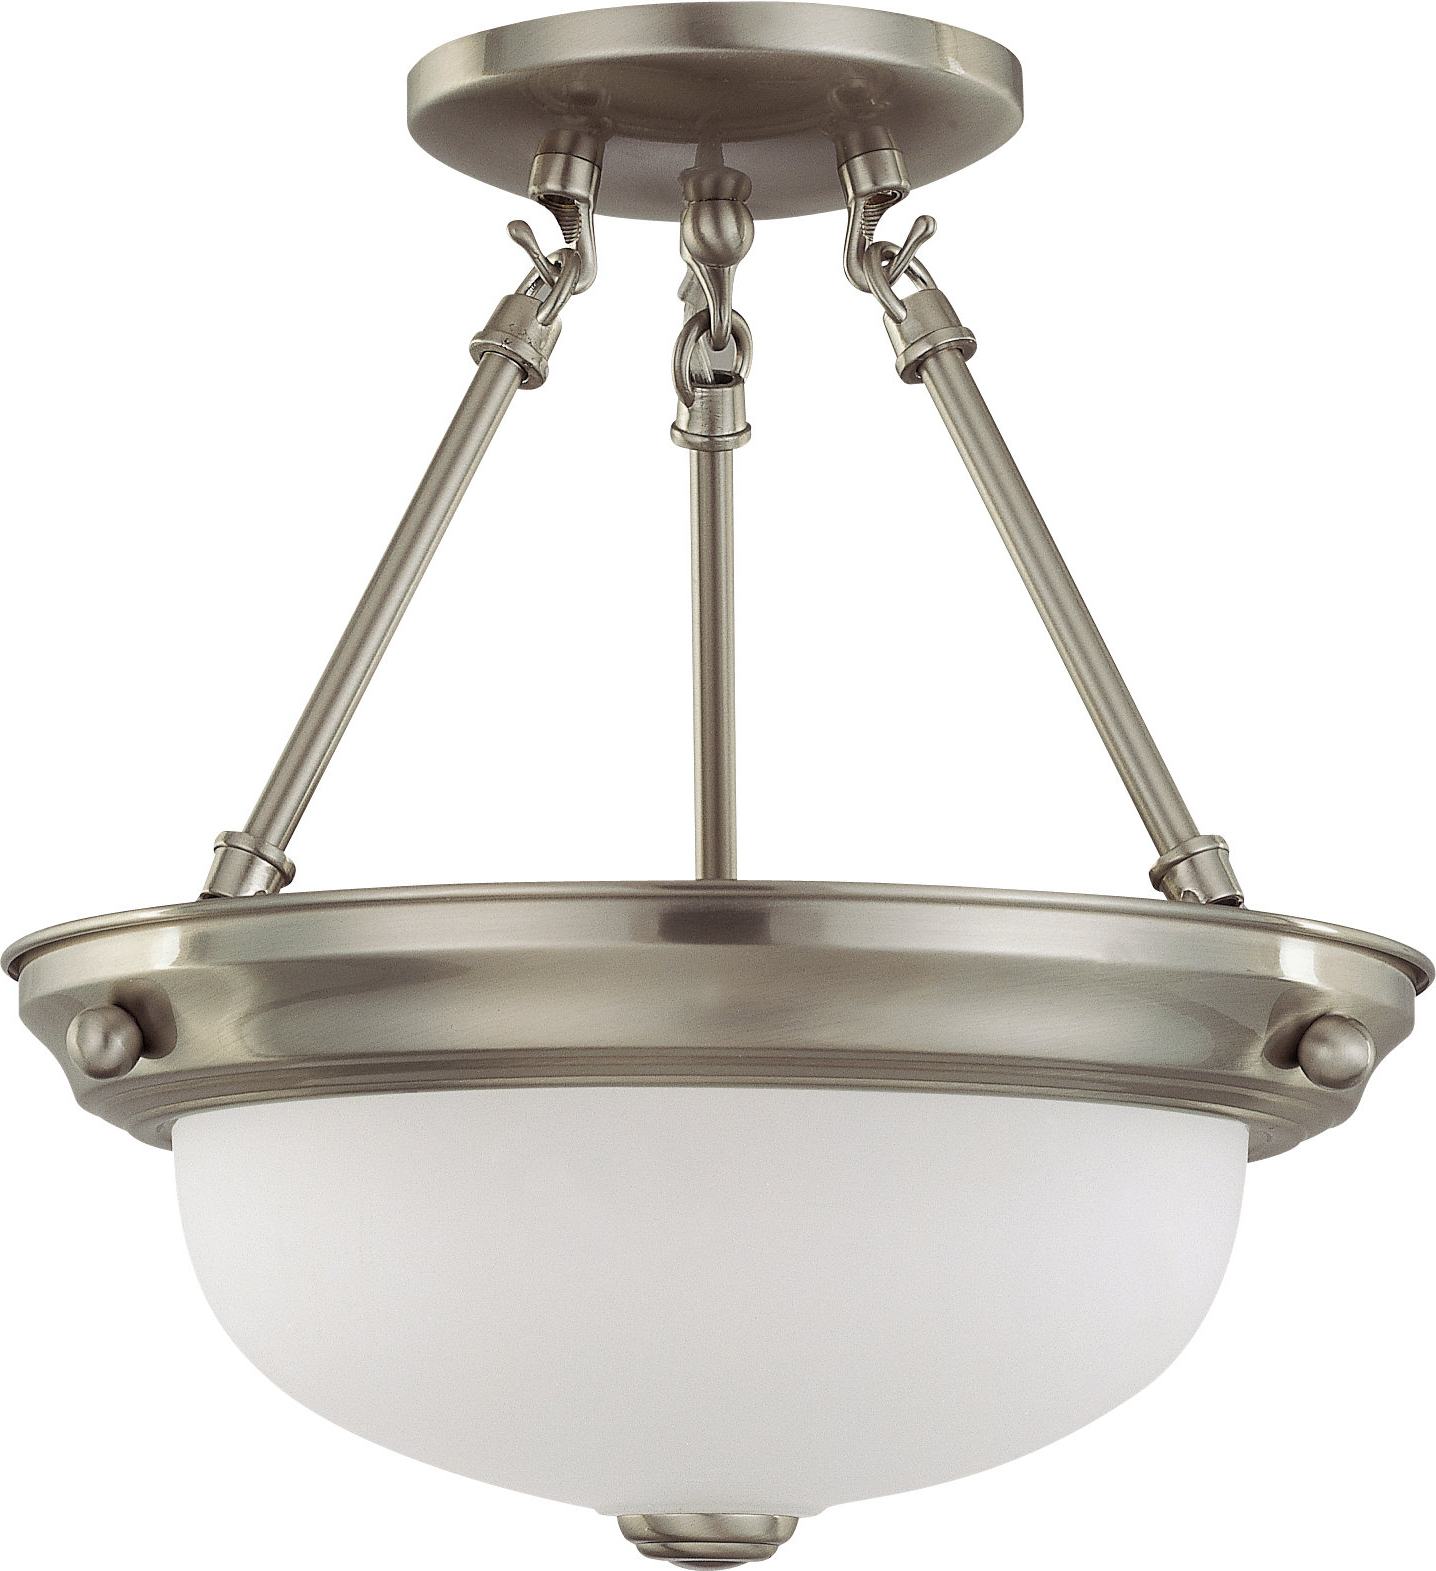 Baumgartner 1 Light Bowl Pendant With Most Up To Date Alayna 4 Light Shaded Chandeliers (View 7 of 20)